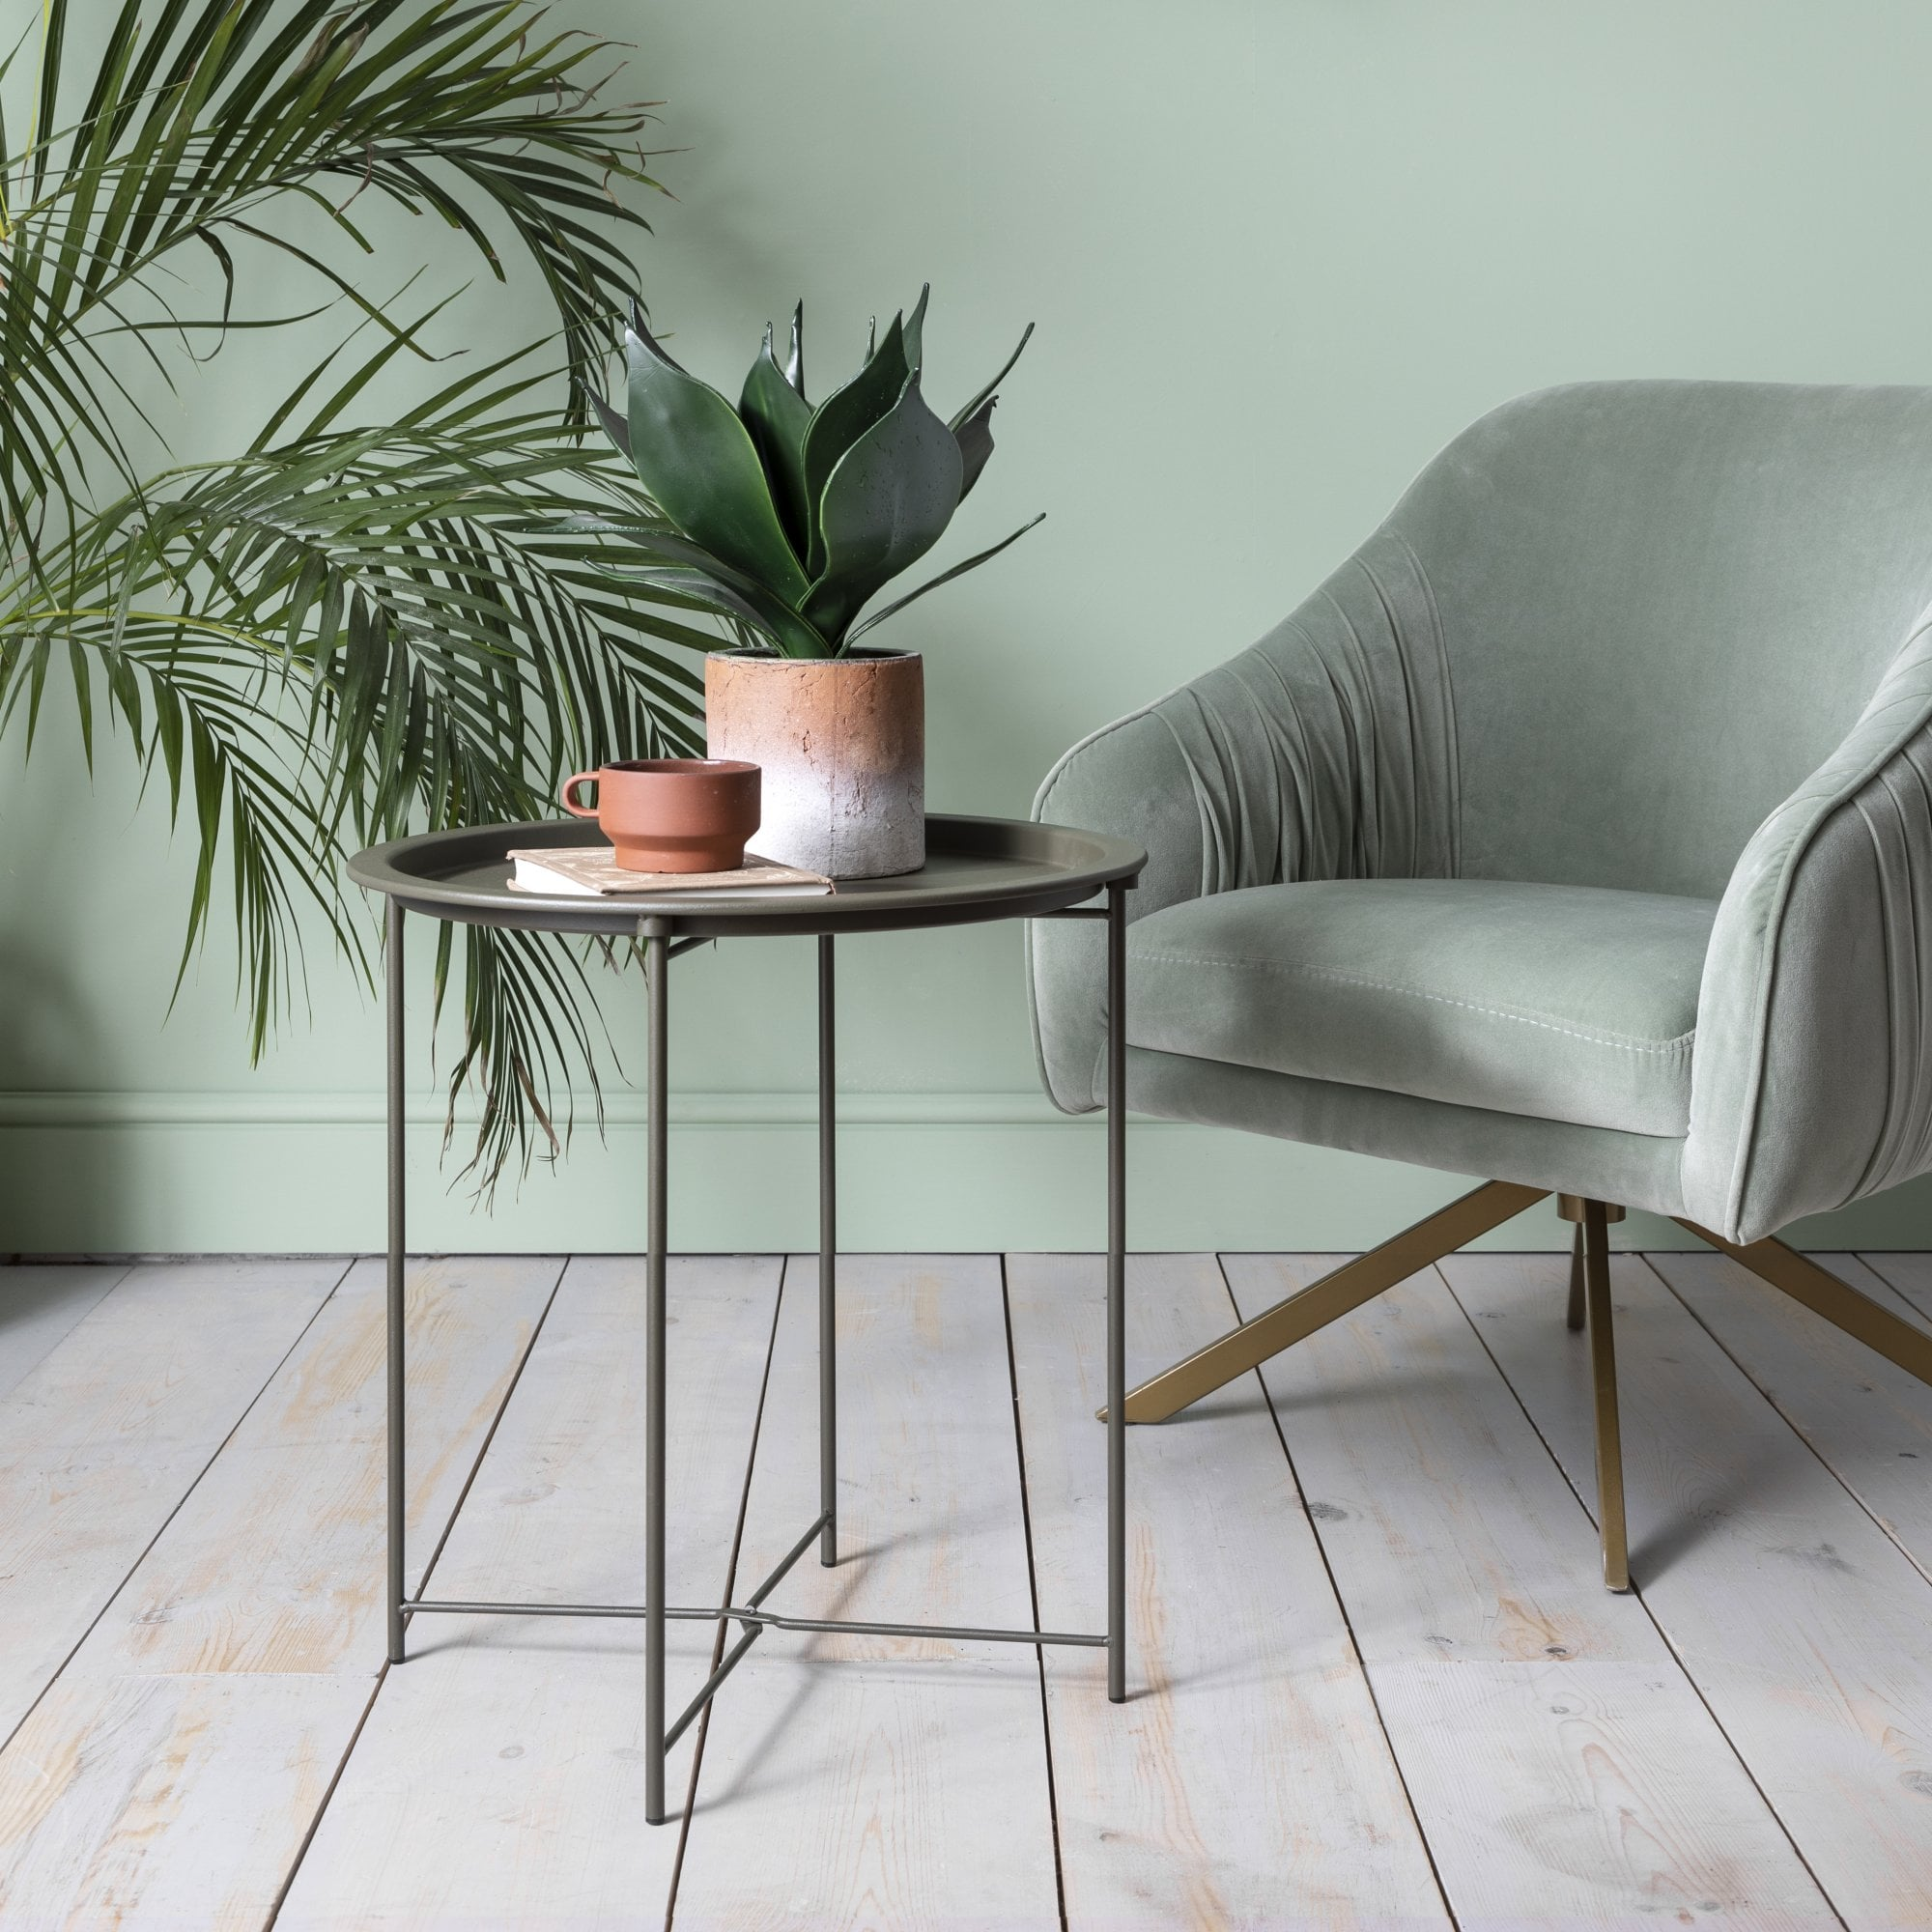 olive green metal side table